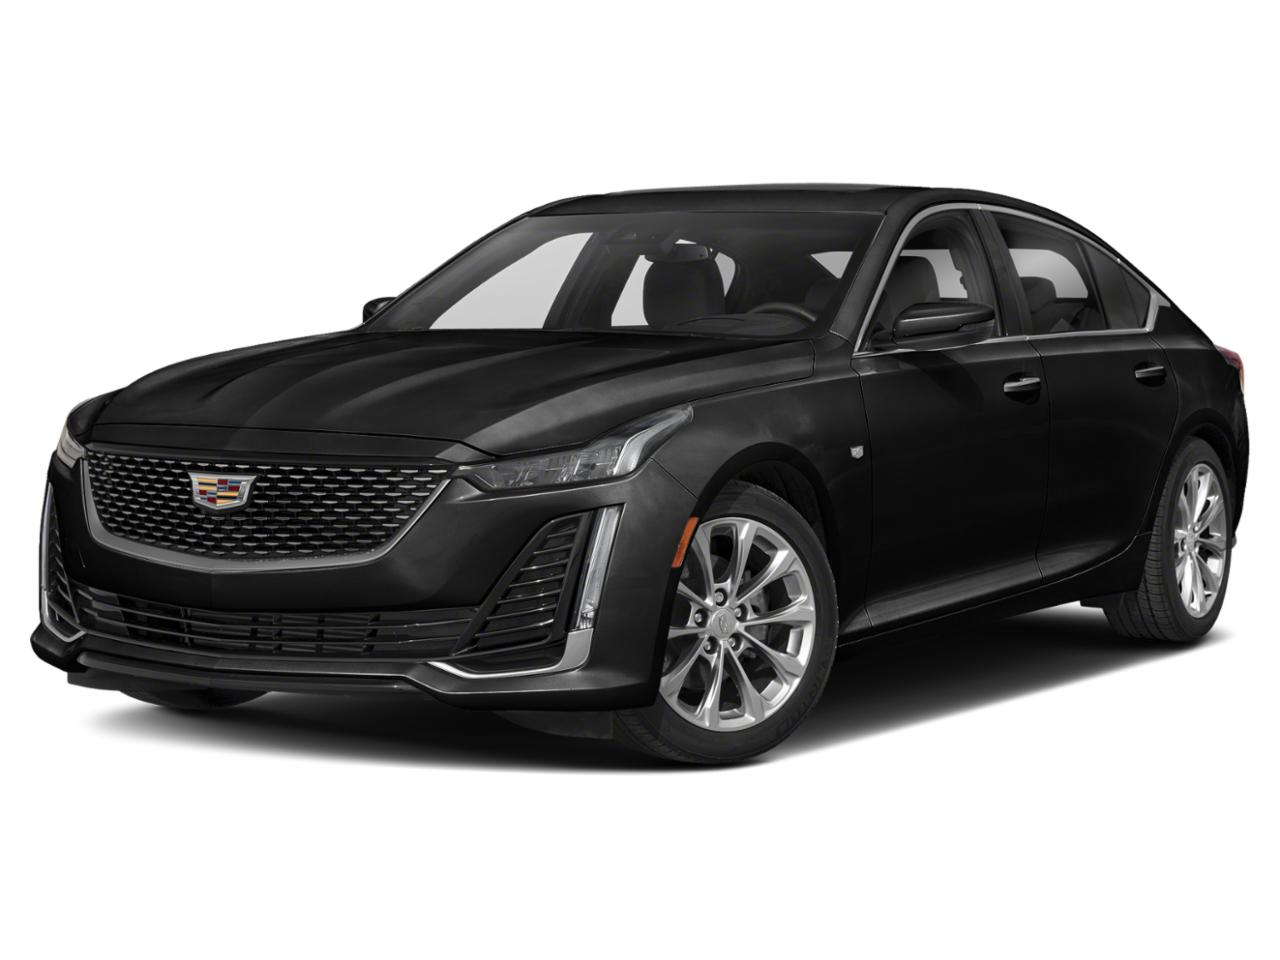 2021 Cadillac CT5 Vehicle Photo in Ocala, FL 34474